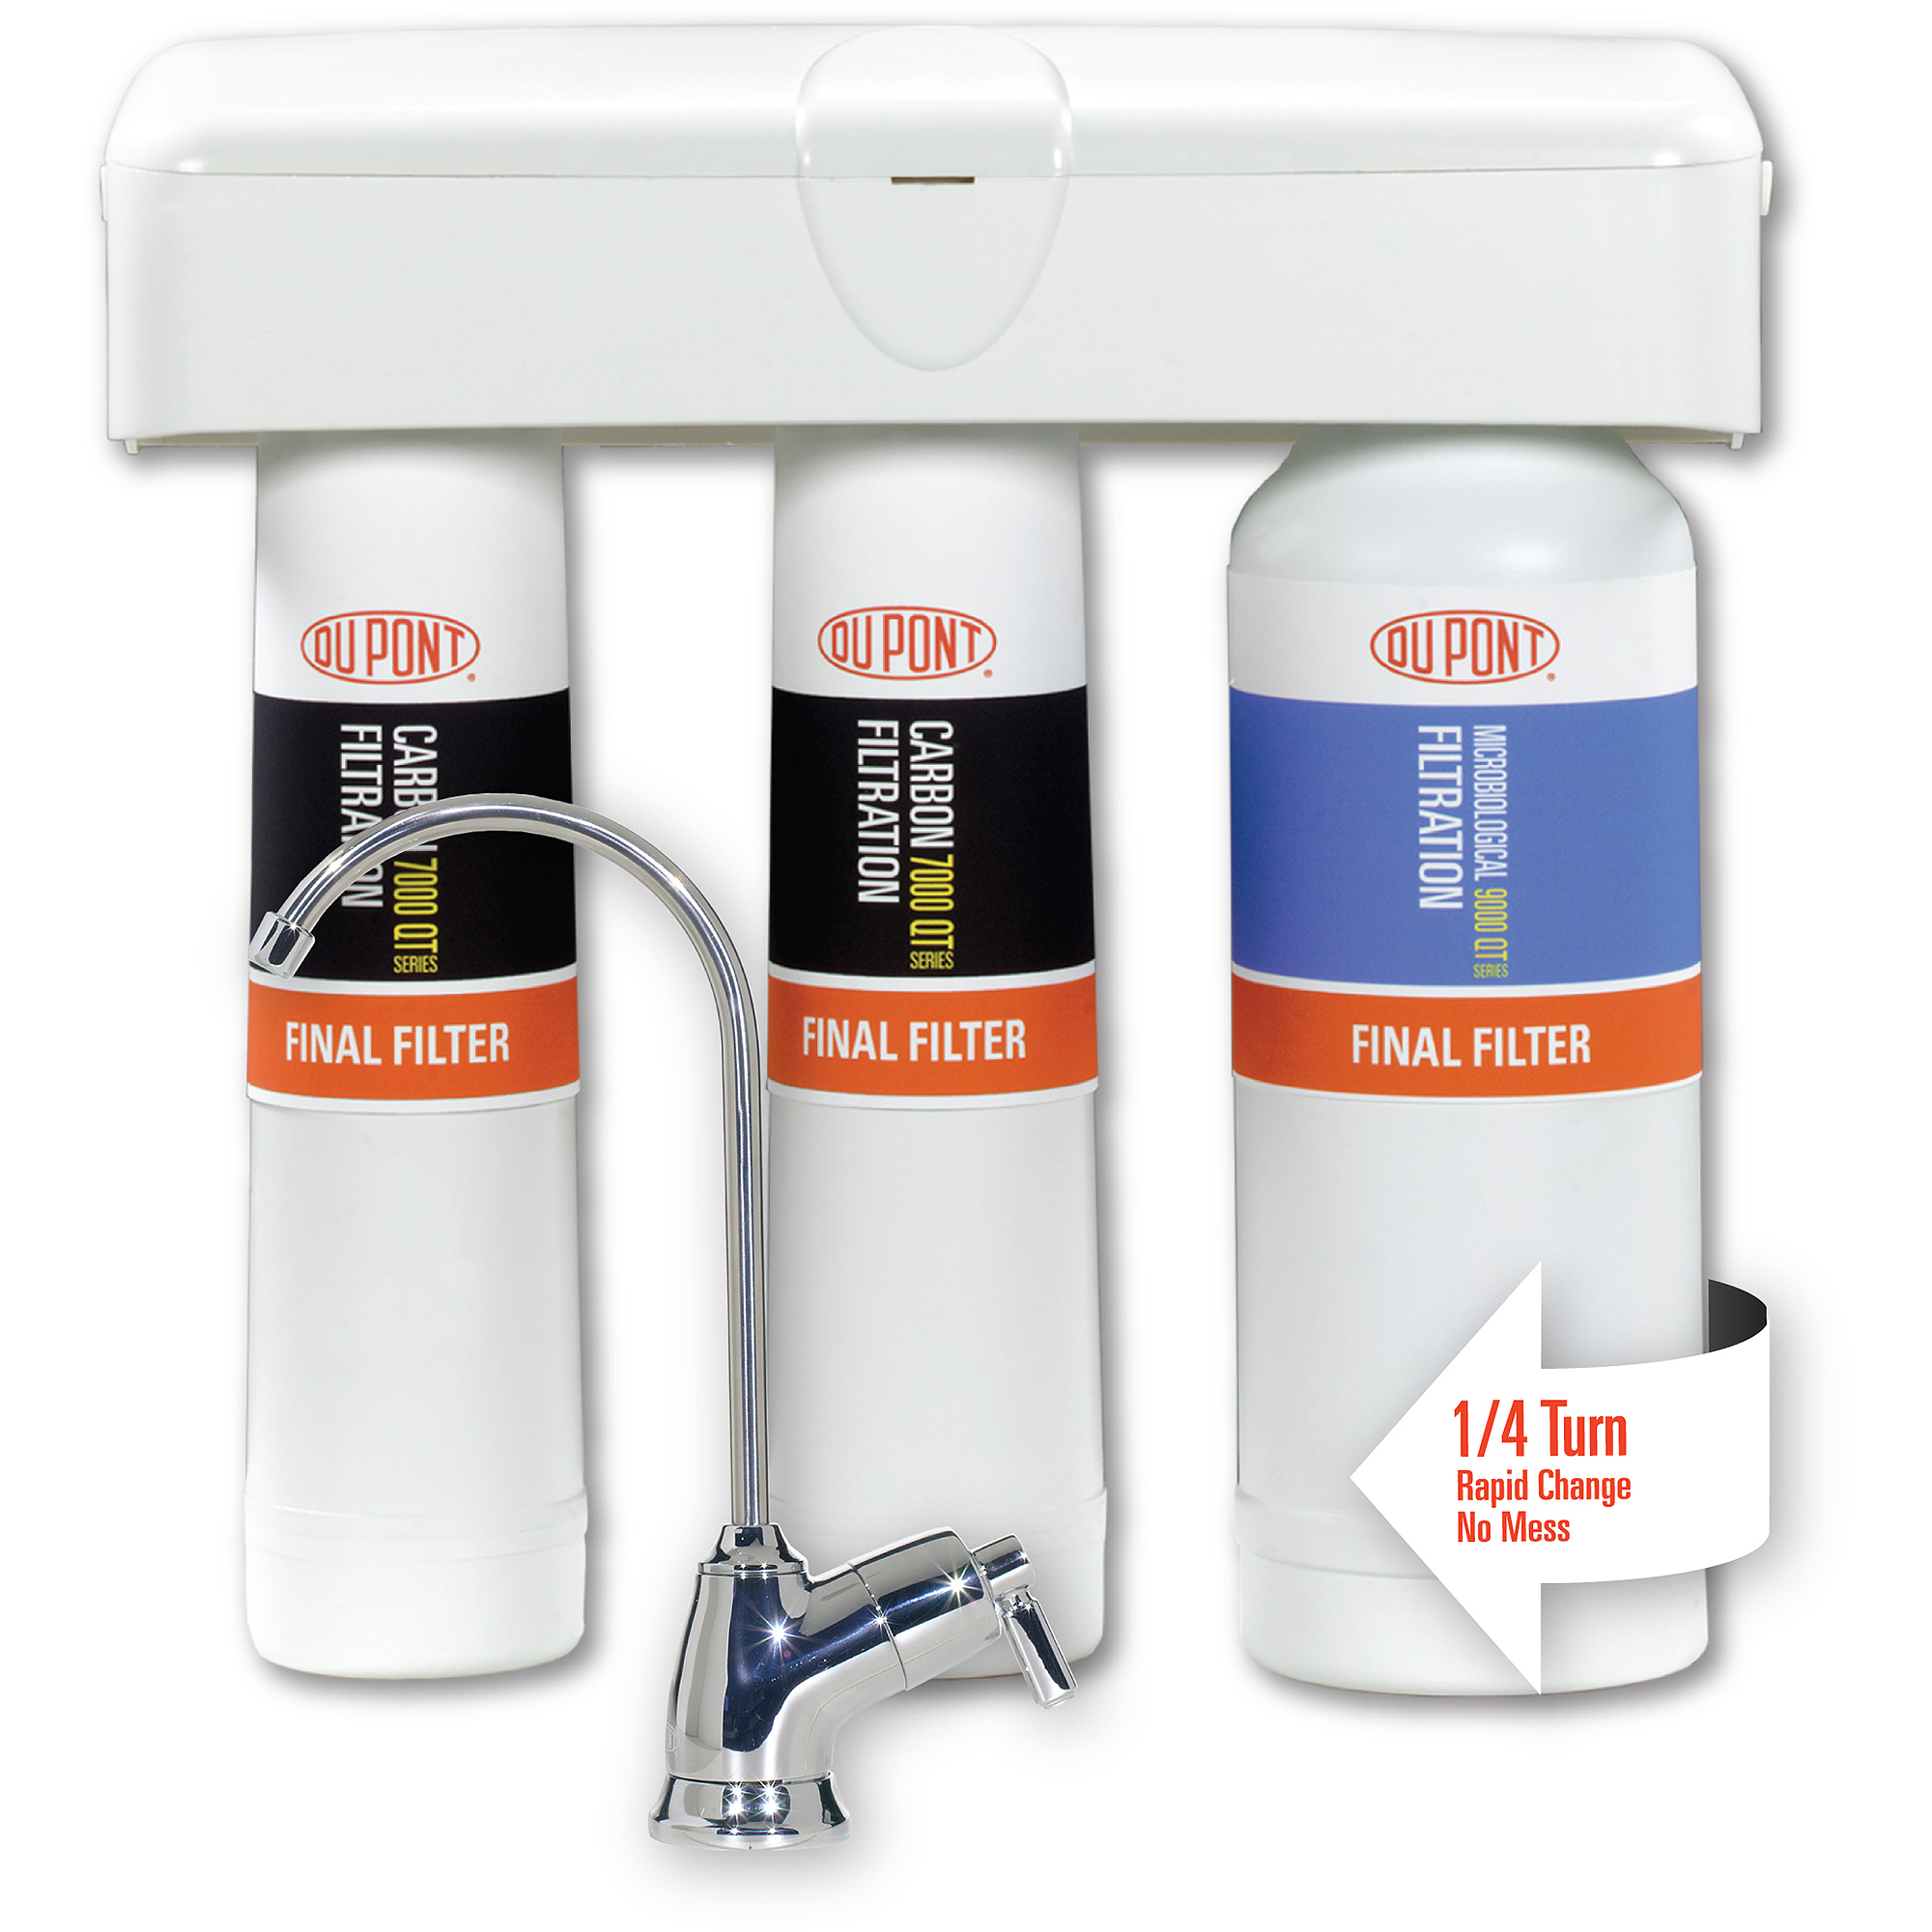 dupont wfqt390005 water filter system 14 in 1 gpm